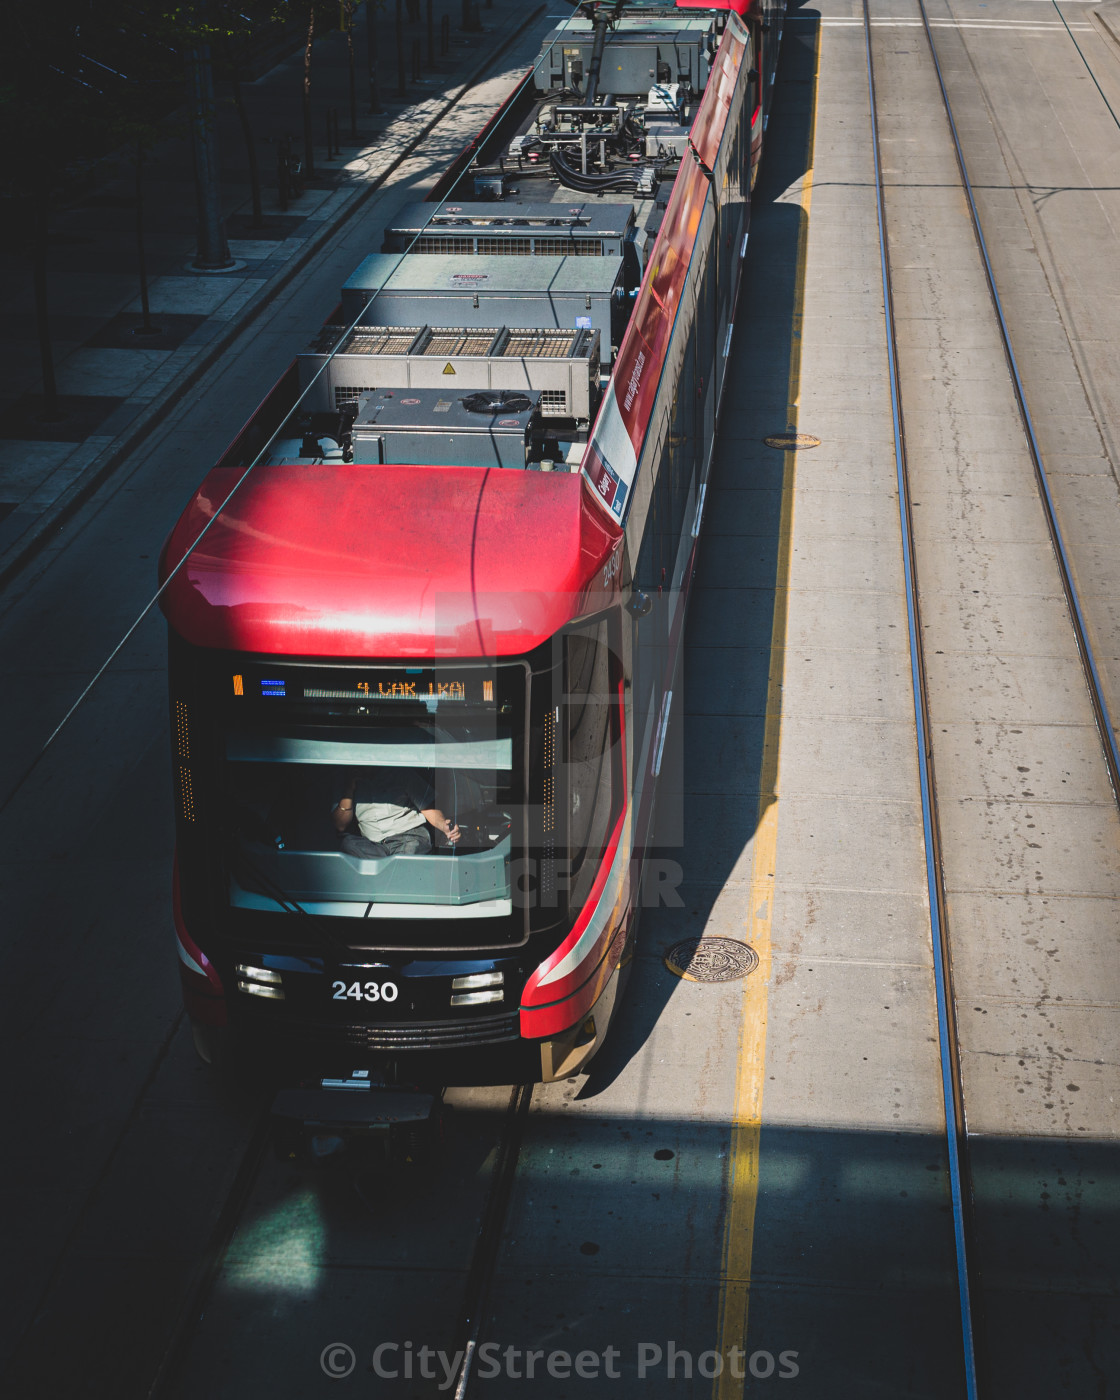 """Commuter train passing under a walkway"" stock image"